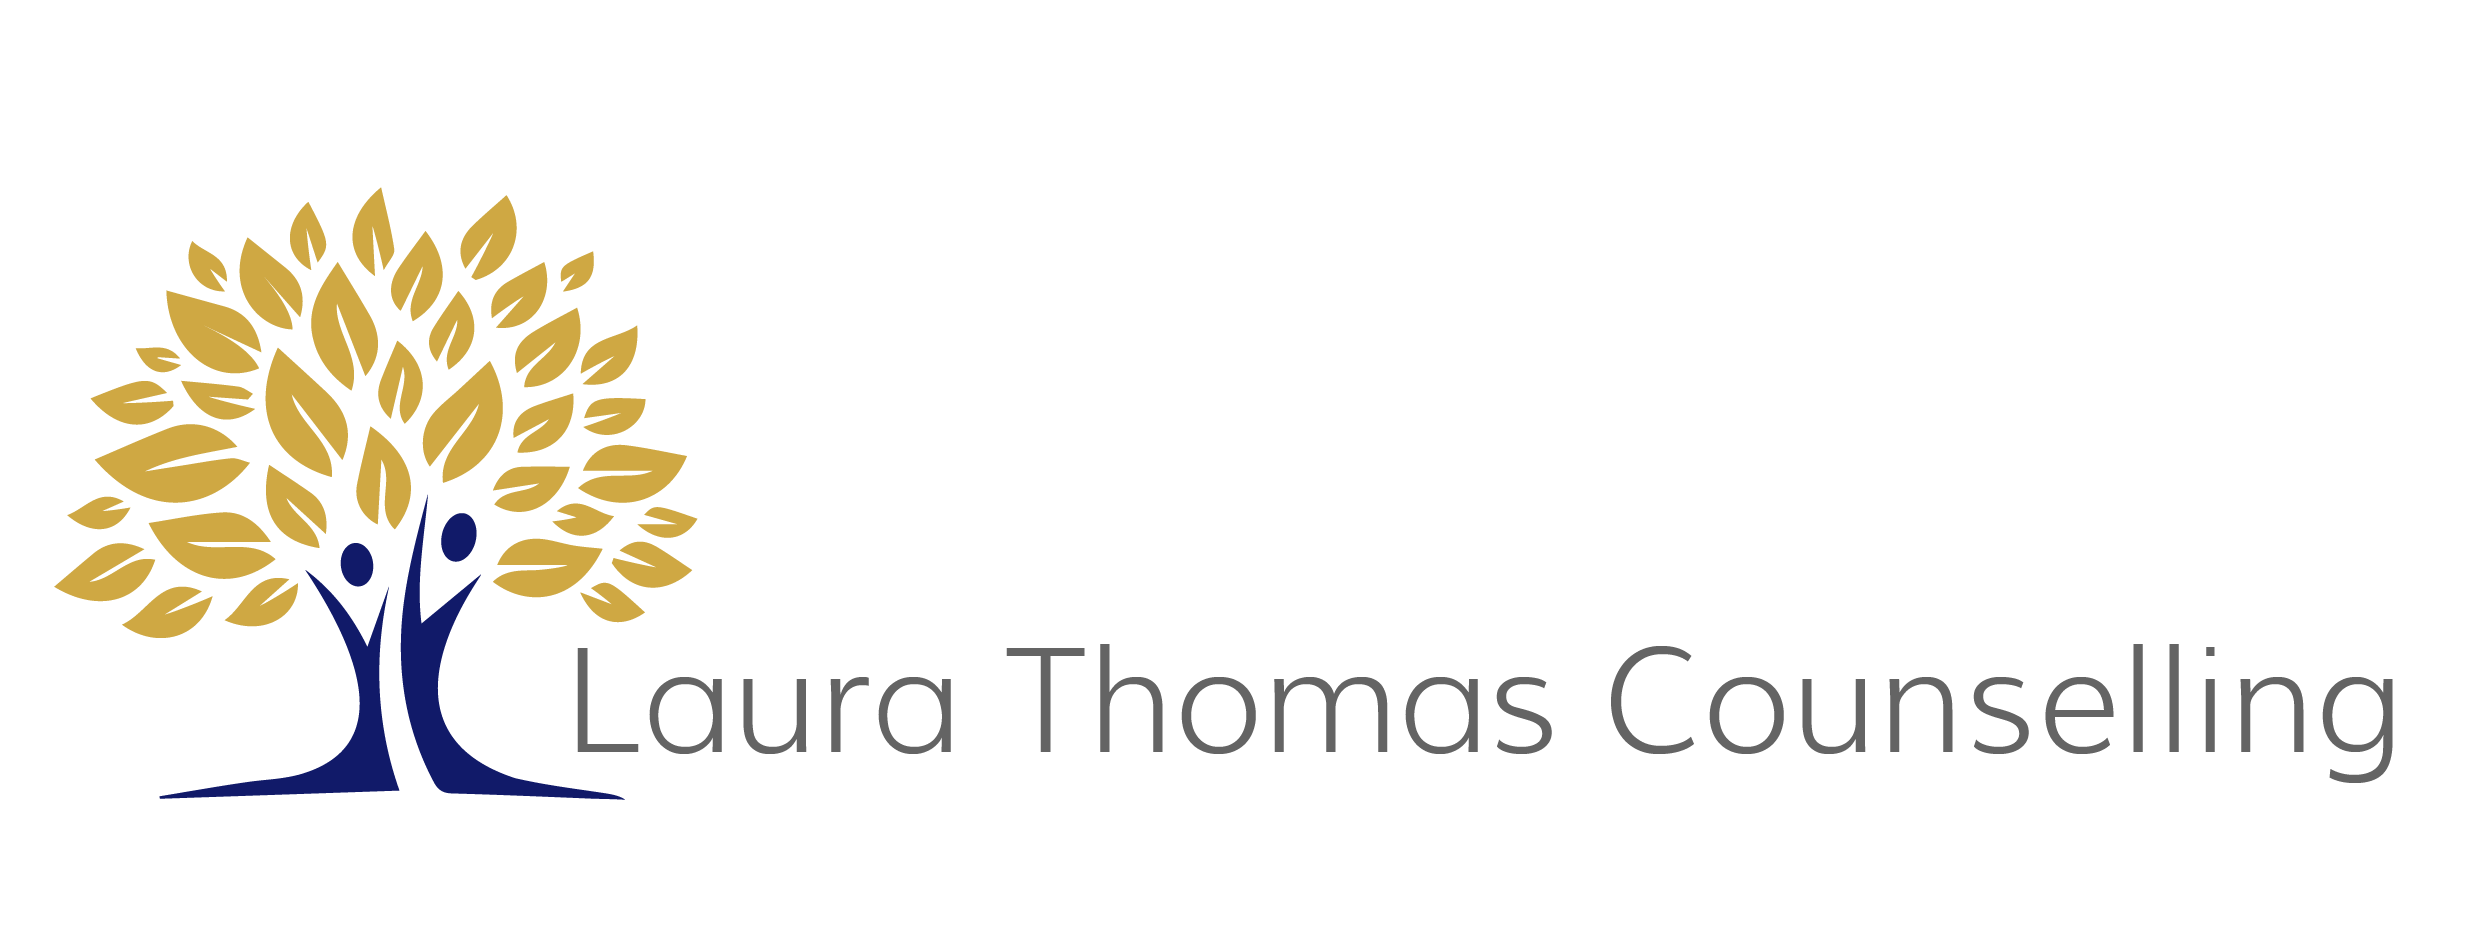 Laura Thomas Counselling